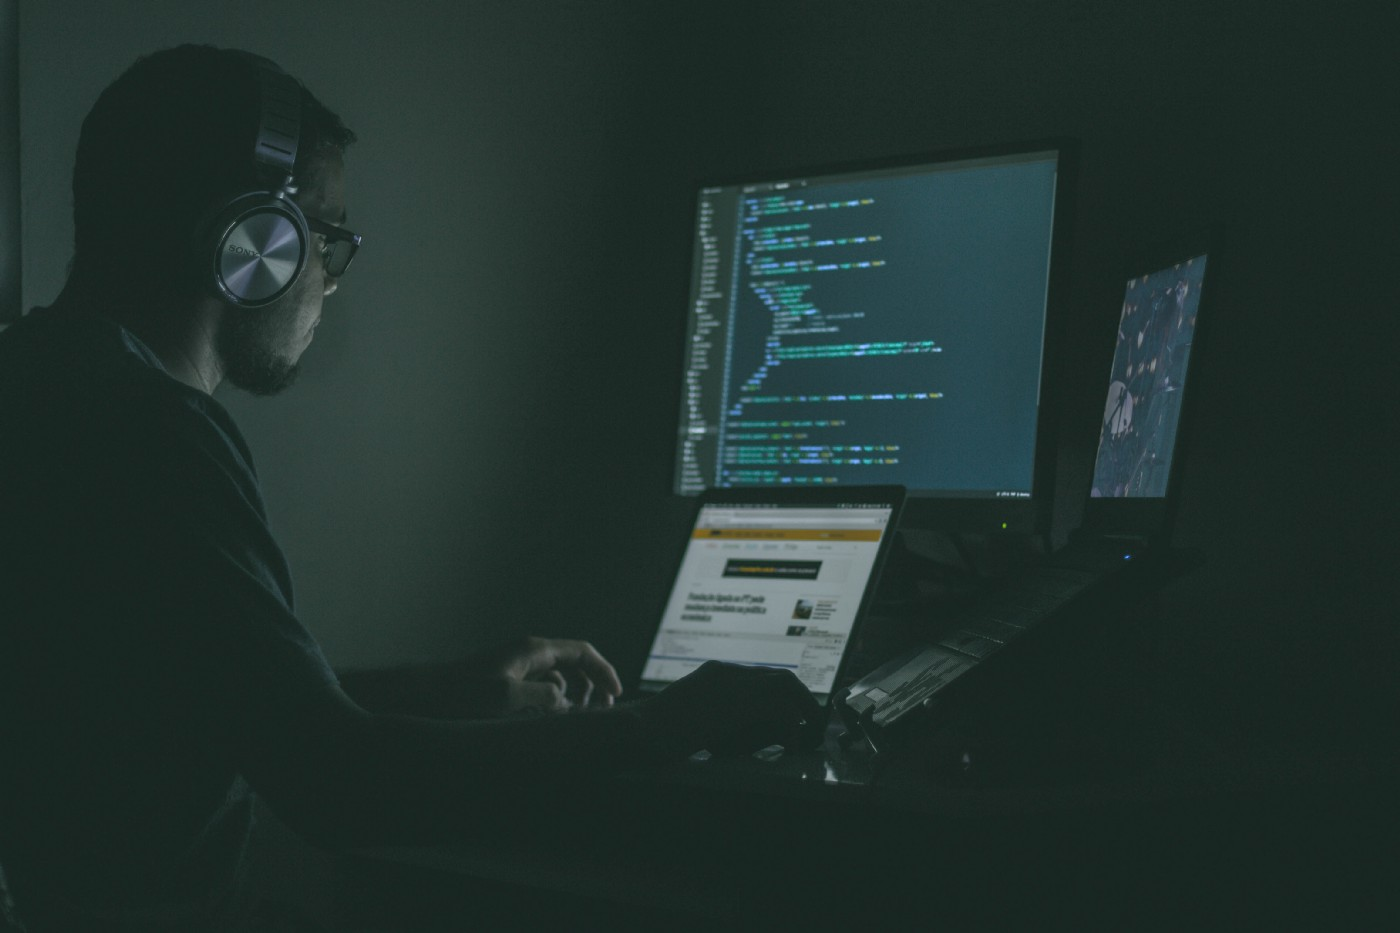 Man coding in a dark room.